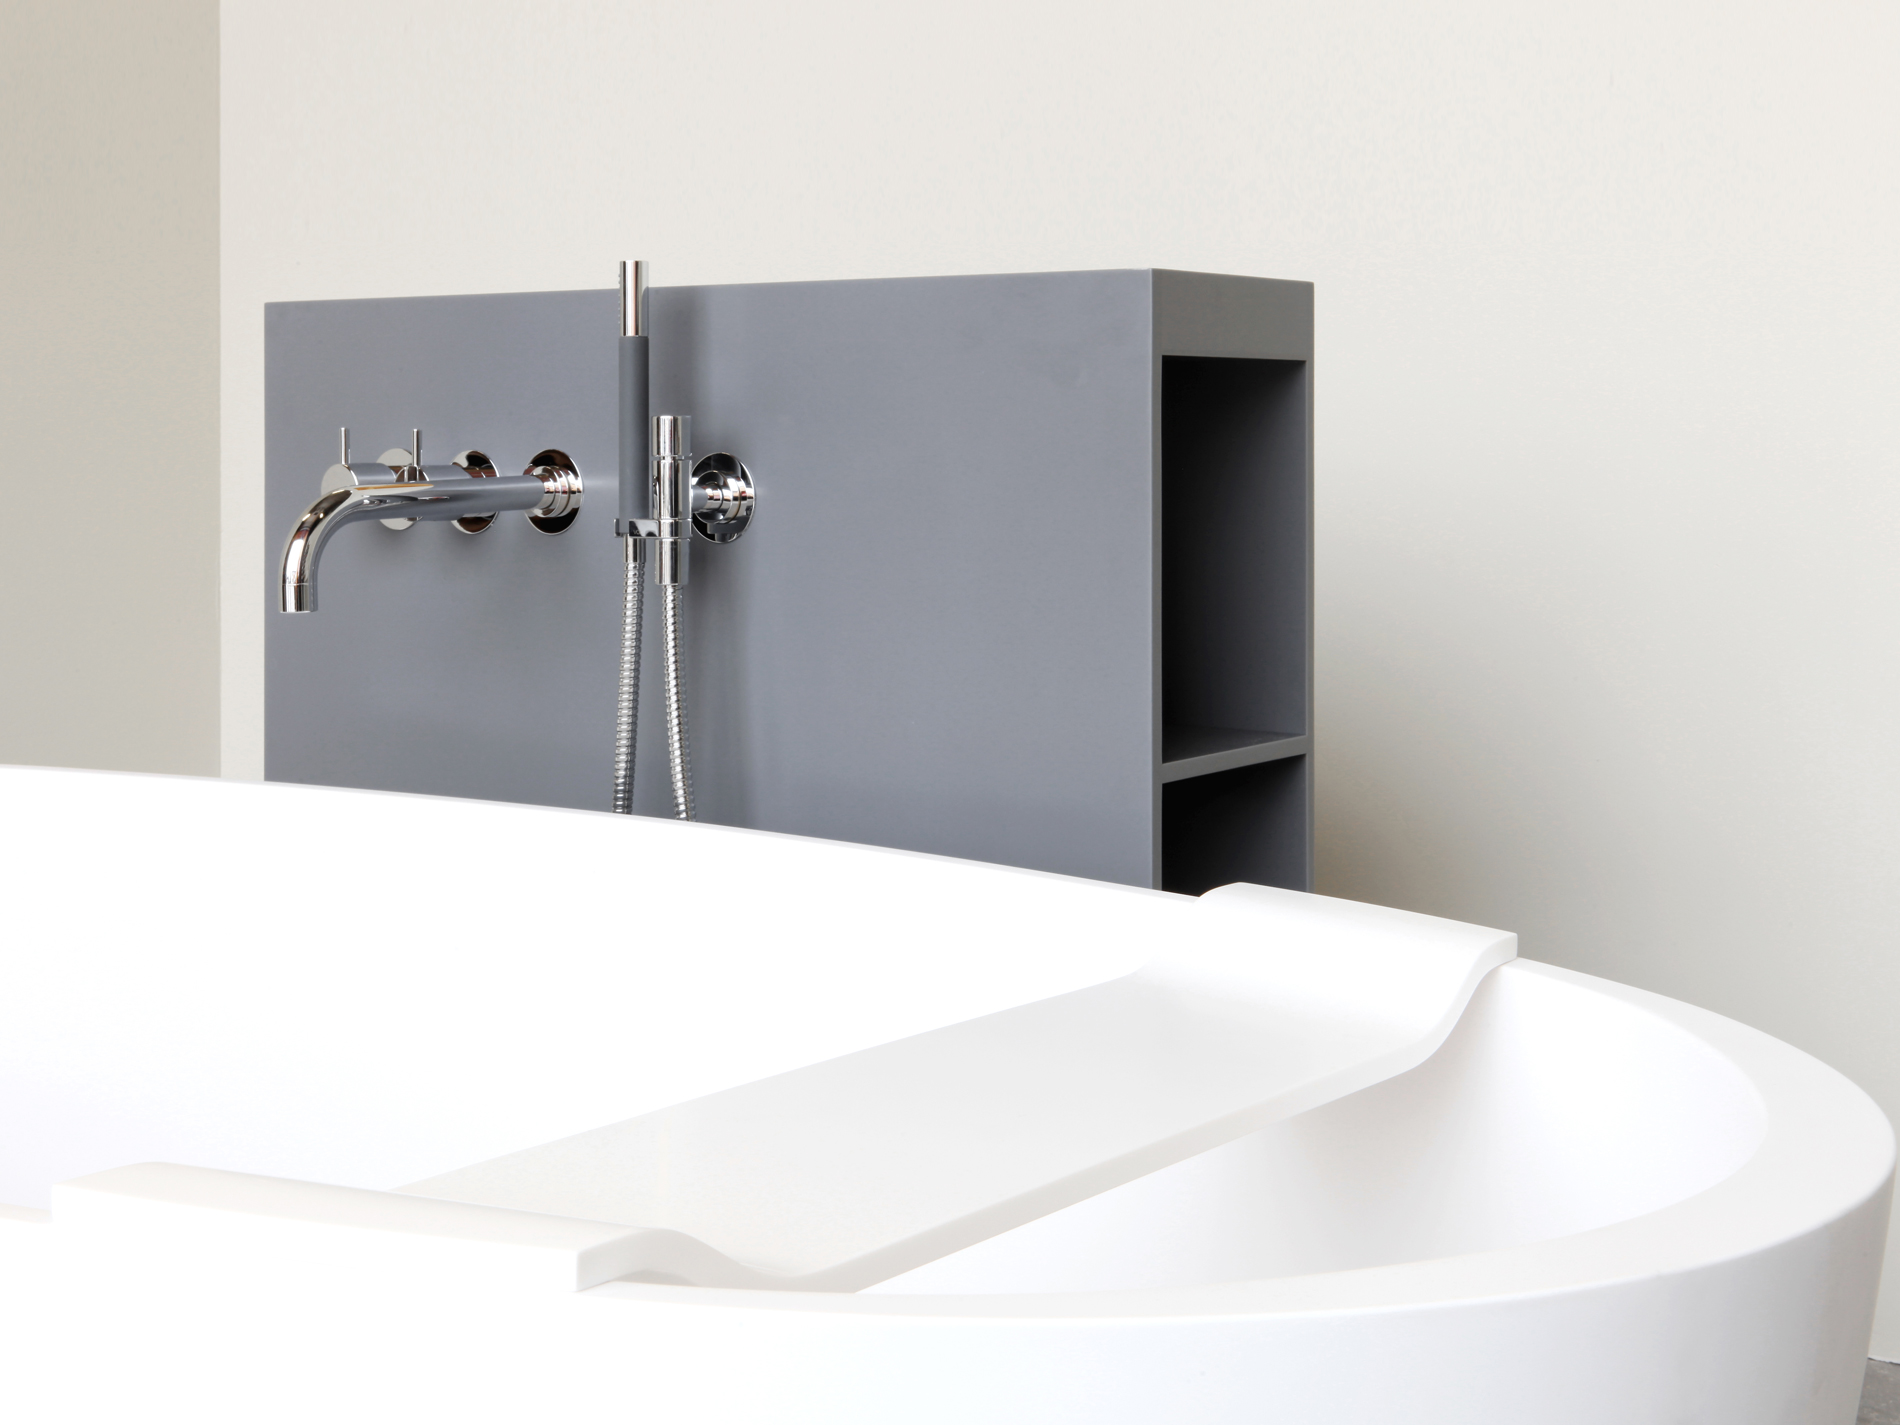 Verse The Verse element has been designed to complement the Loop and Axis  freestanding baths  The central purpose is to accommodate a wall mounted  tap but. Loop   Not Only White